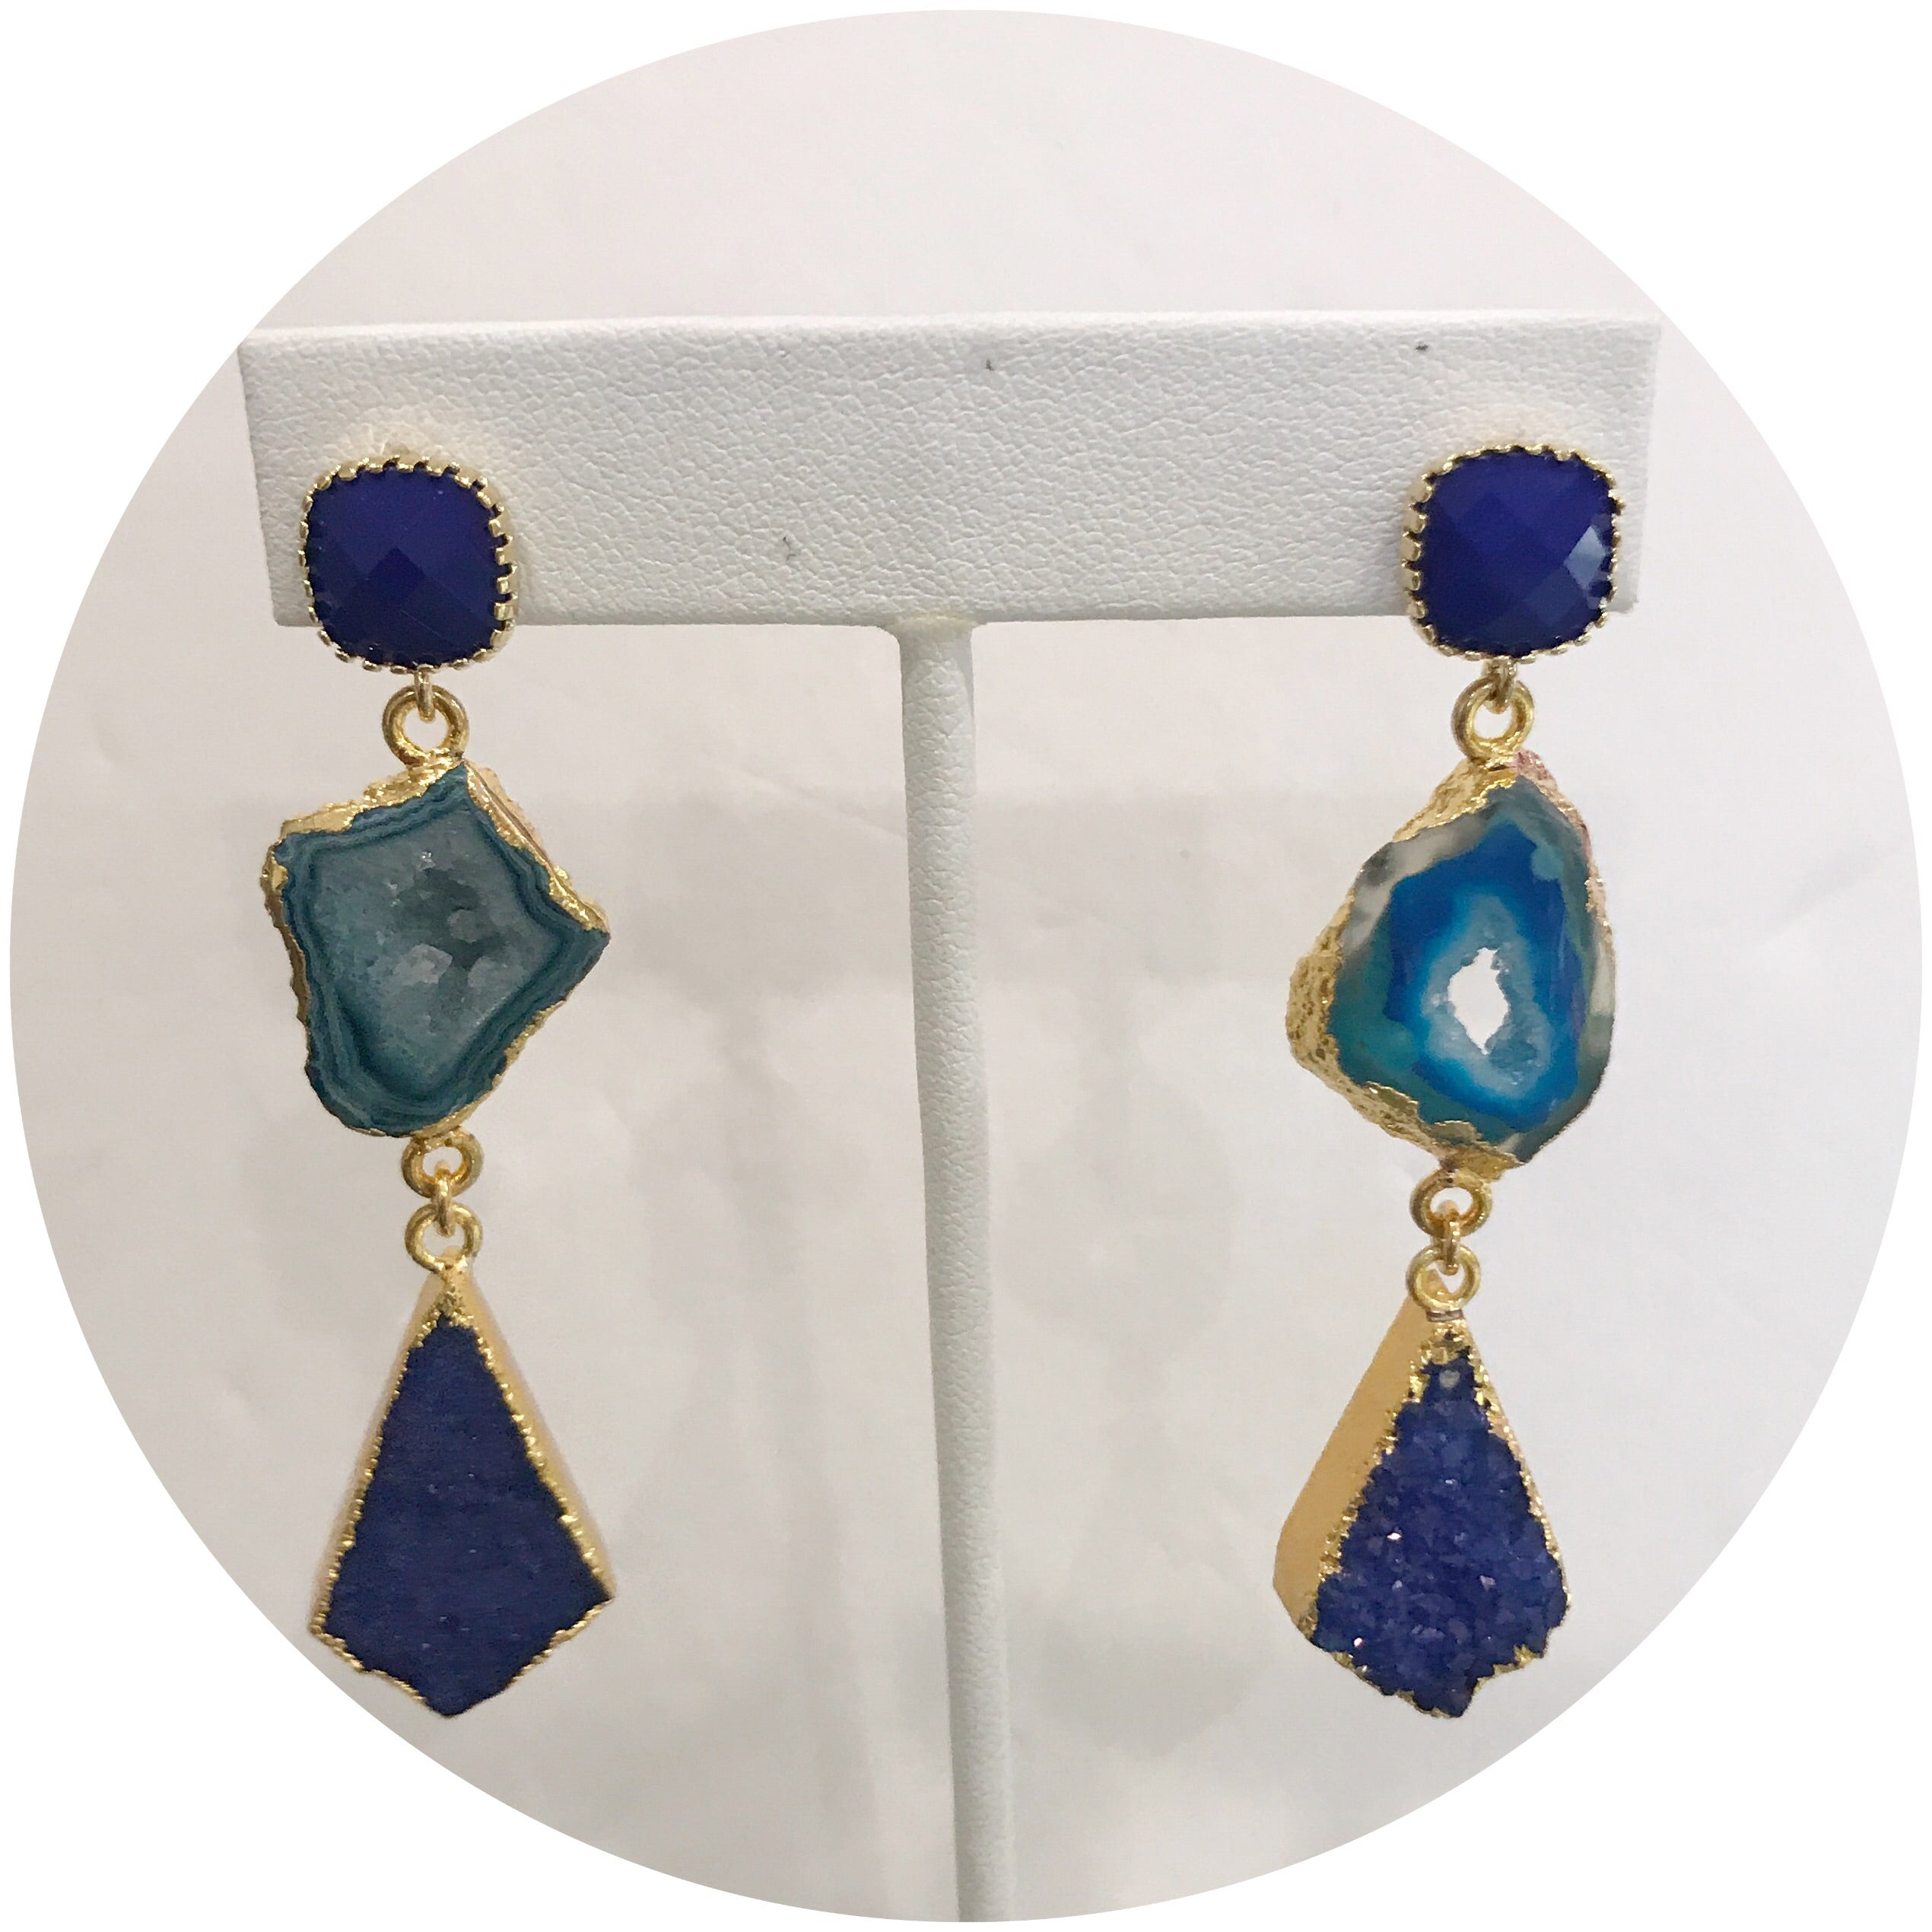 Rachel Blue Agate with Lapis Druzy Drop Earrings